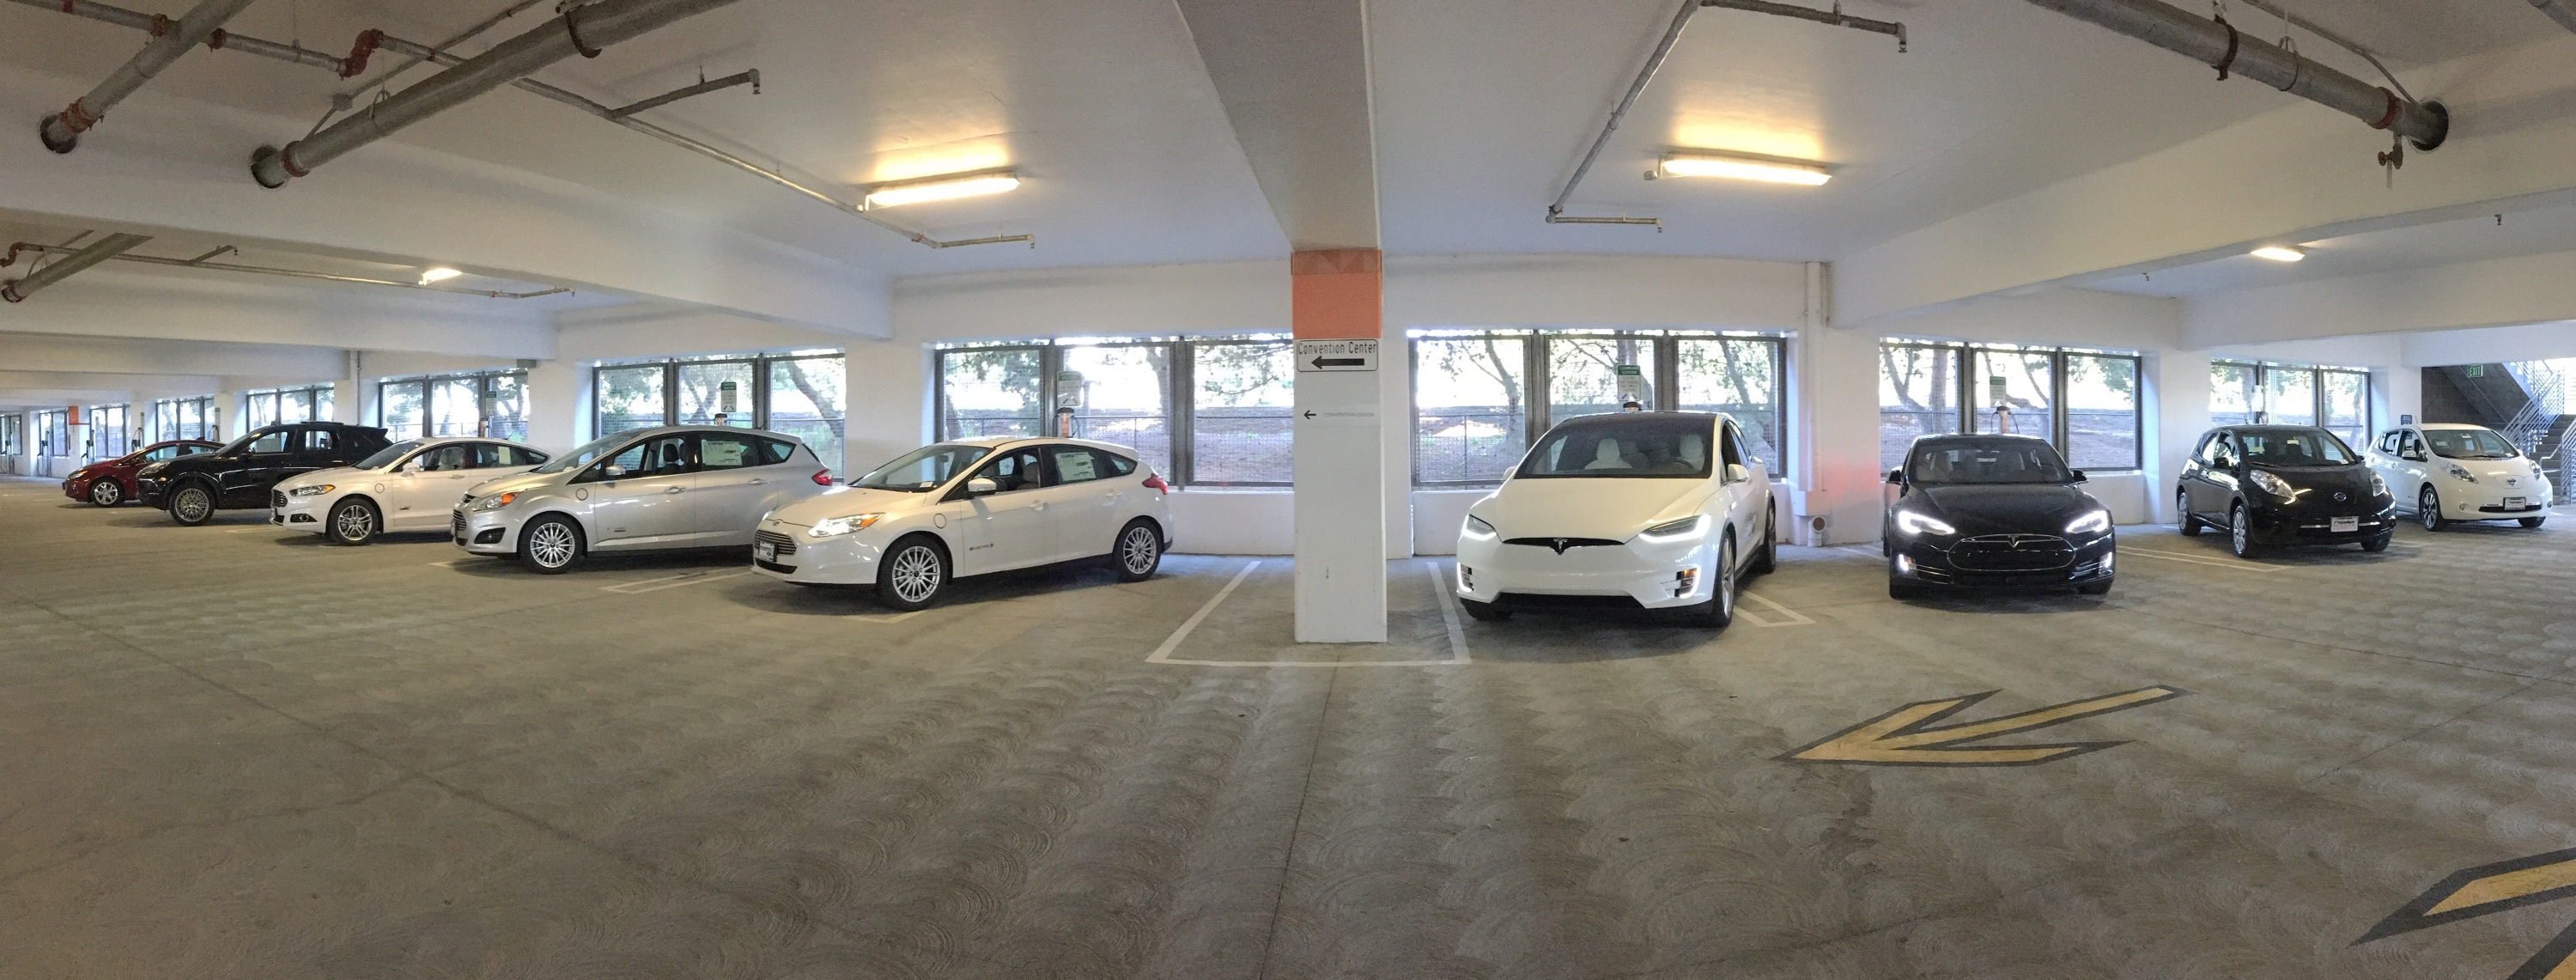 49-Station EV Charging Center Opens in Calif.